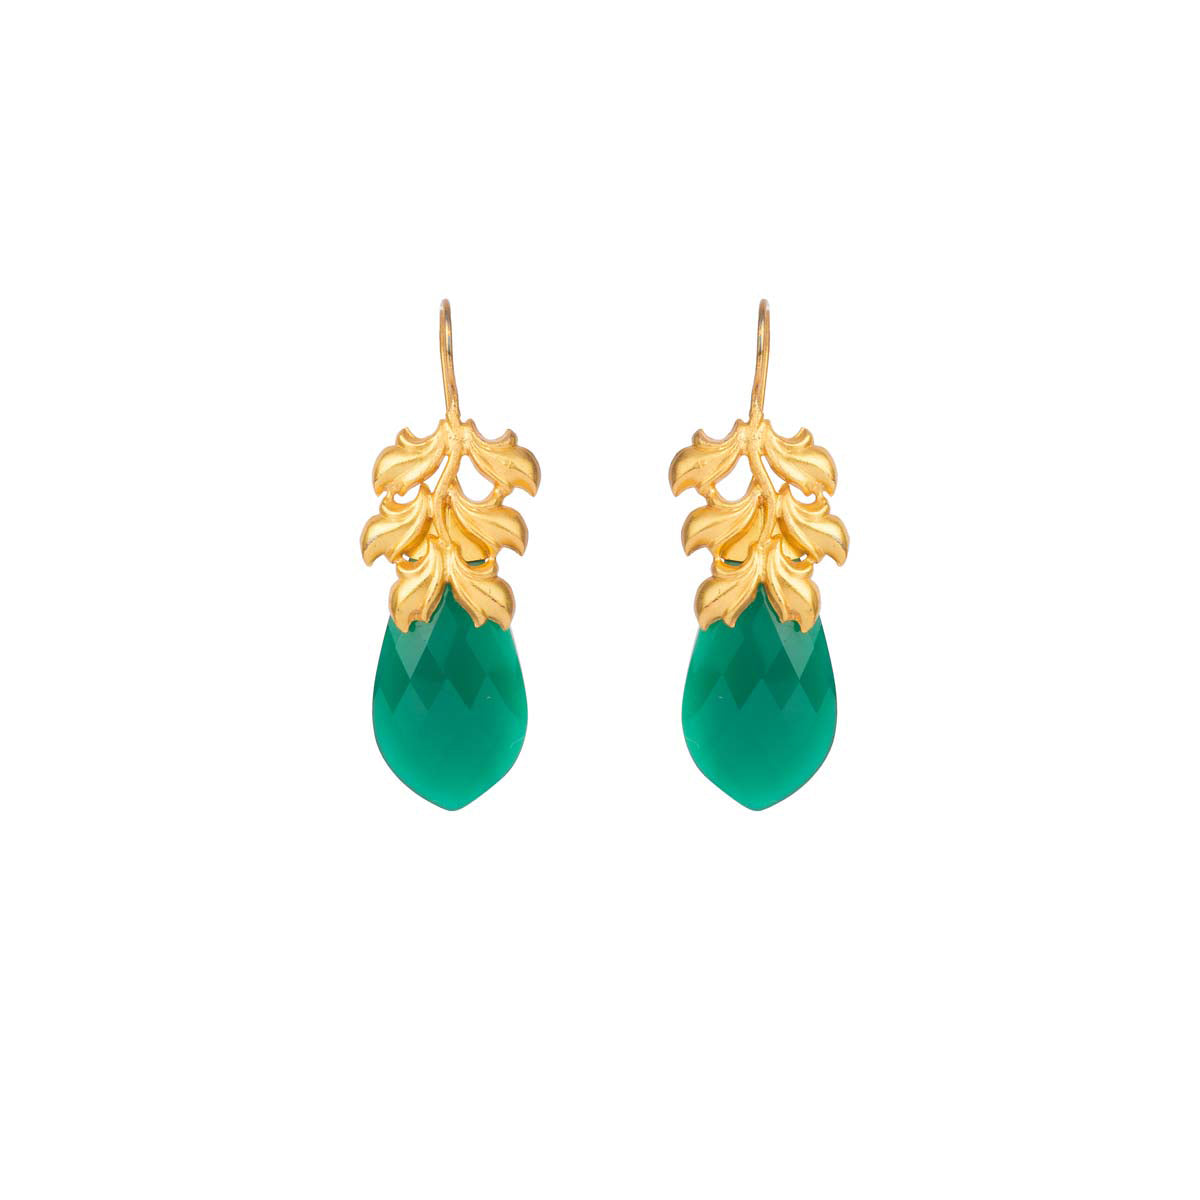 Stay evergreen, always with these irresistible gold-plated earrings finished with a large green stone.